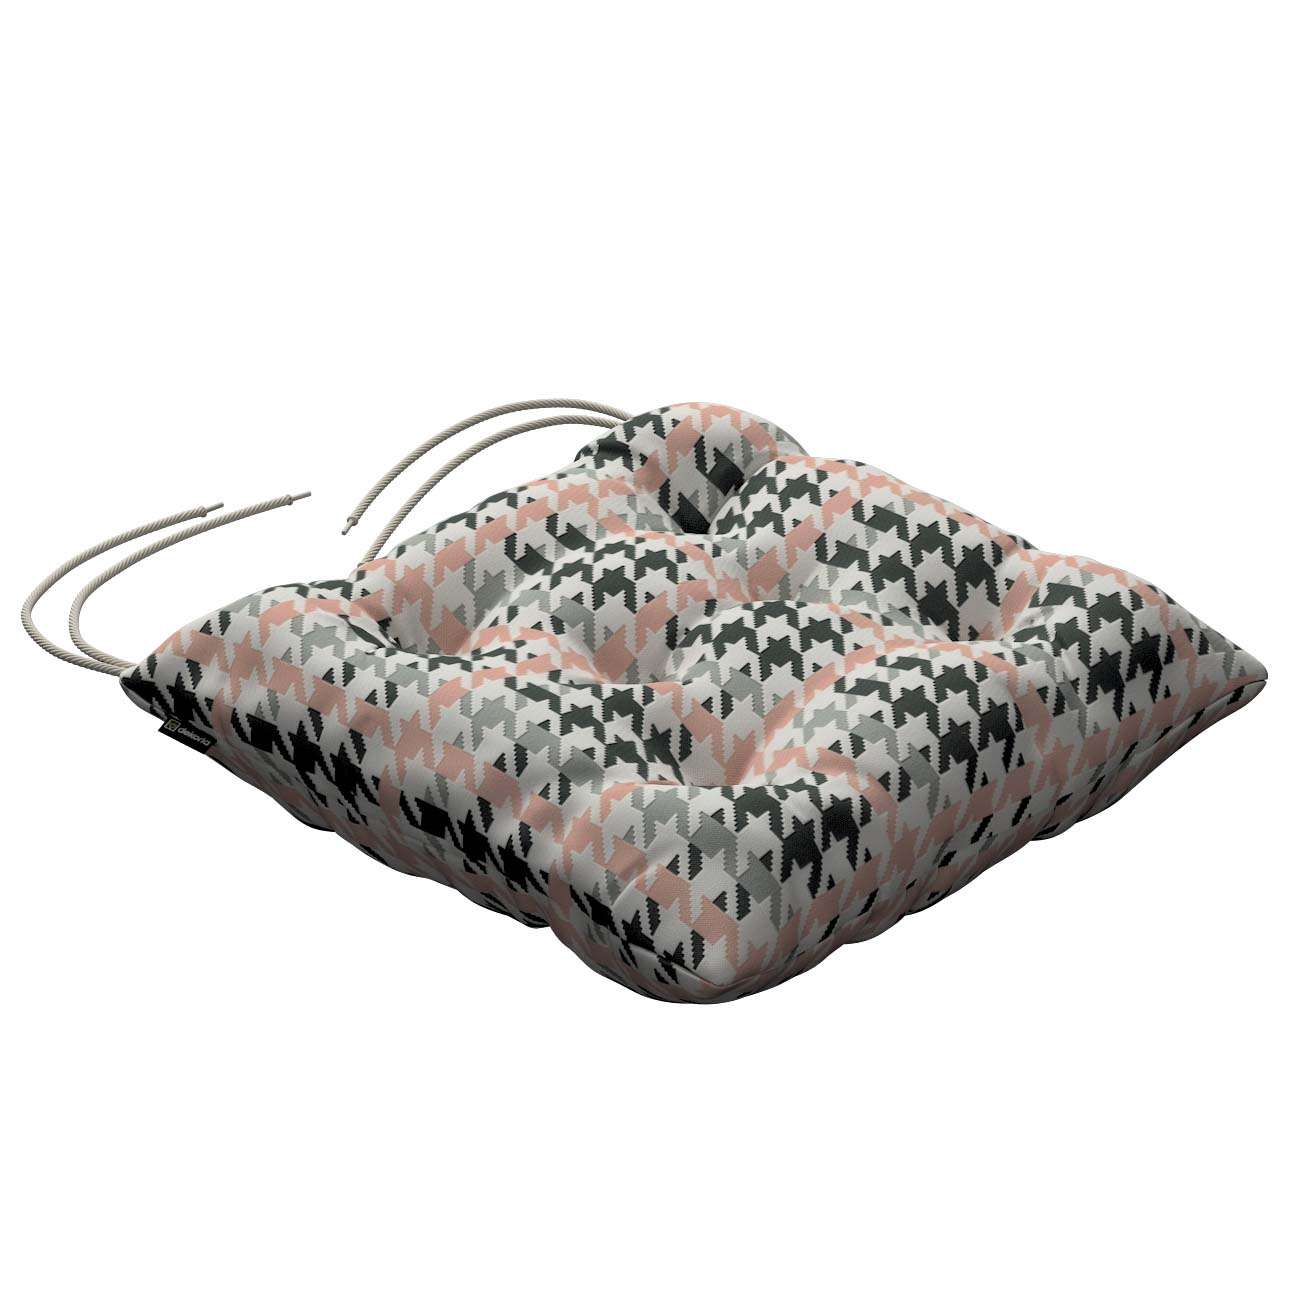 Jacek seat pad with ties 40 x 40 x 8 cm (16 x 16 x 3 inch) in collection Brooklyn, fabric: 137-75